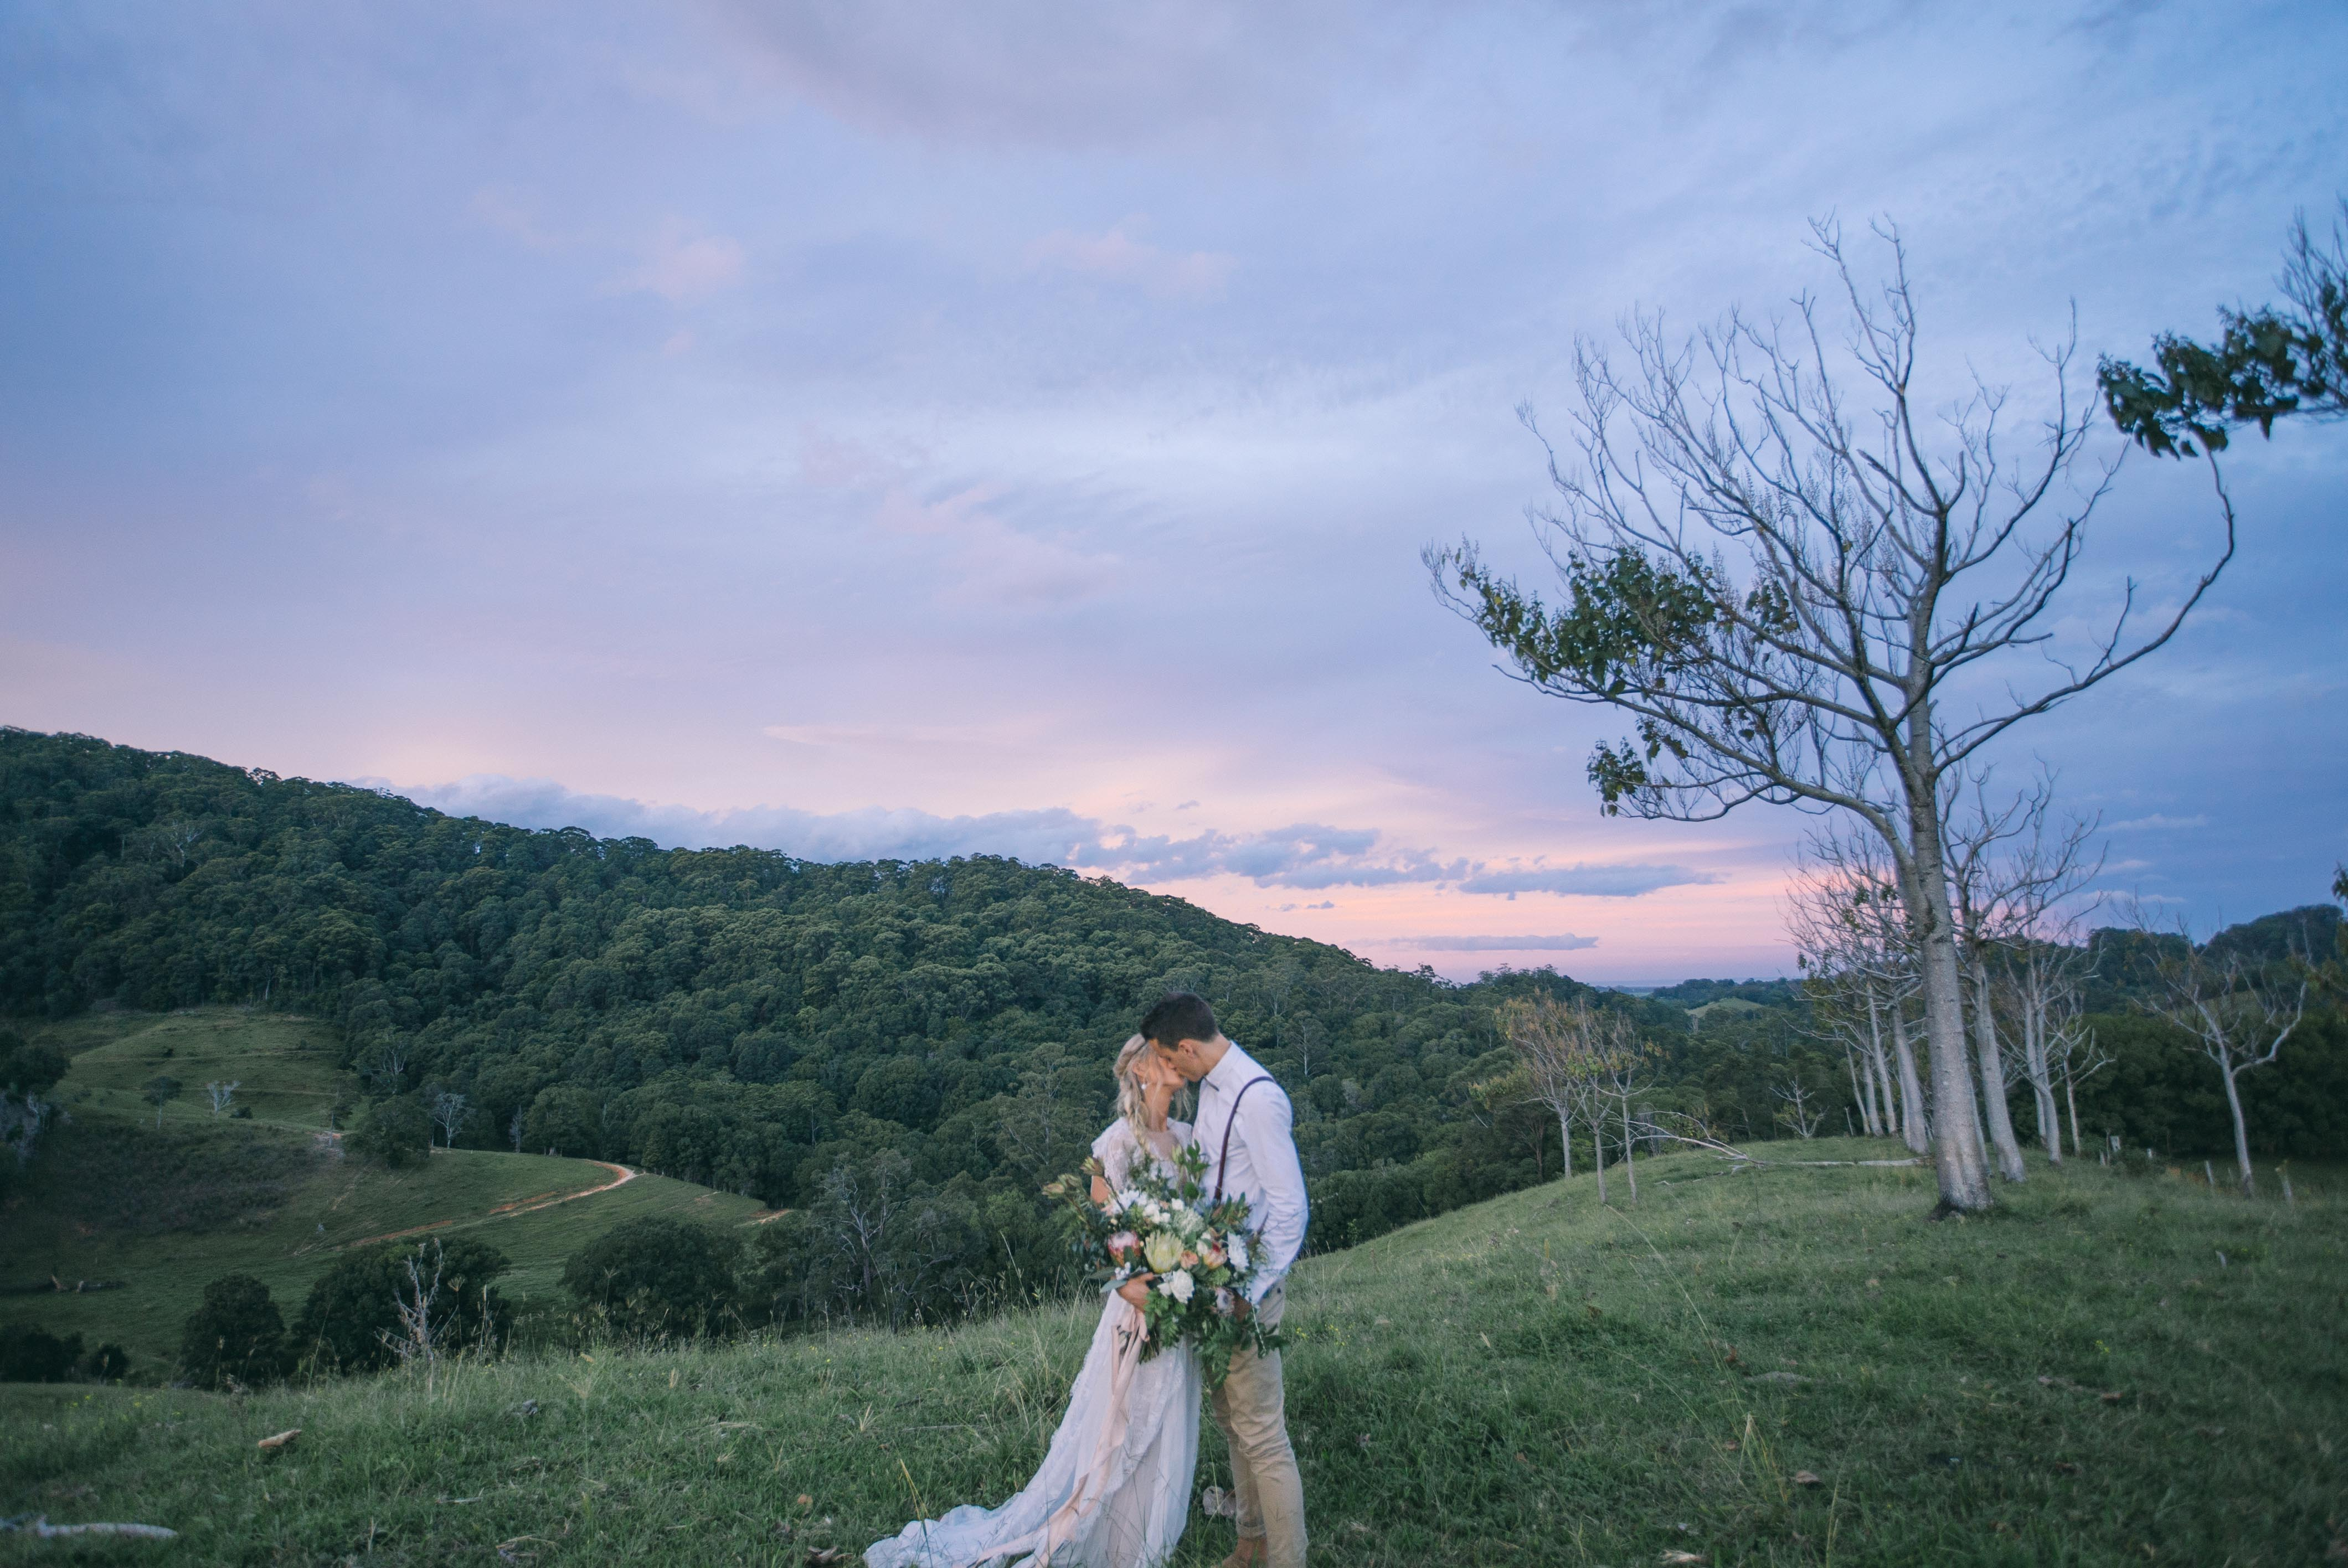 Styled Shoot | 10/05/2016 | Casa Ciani, Crabbes Creek, NSW